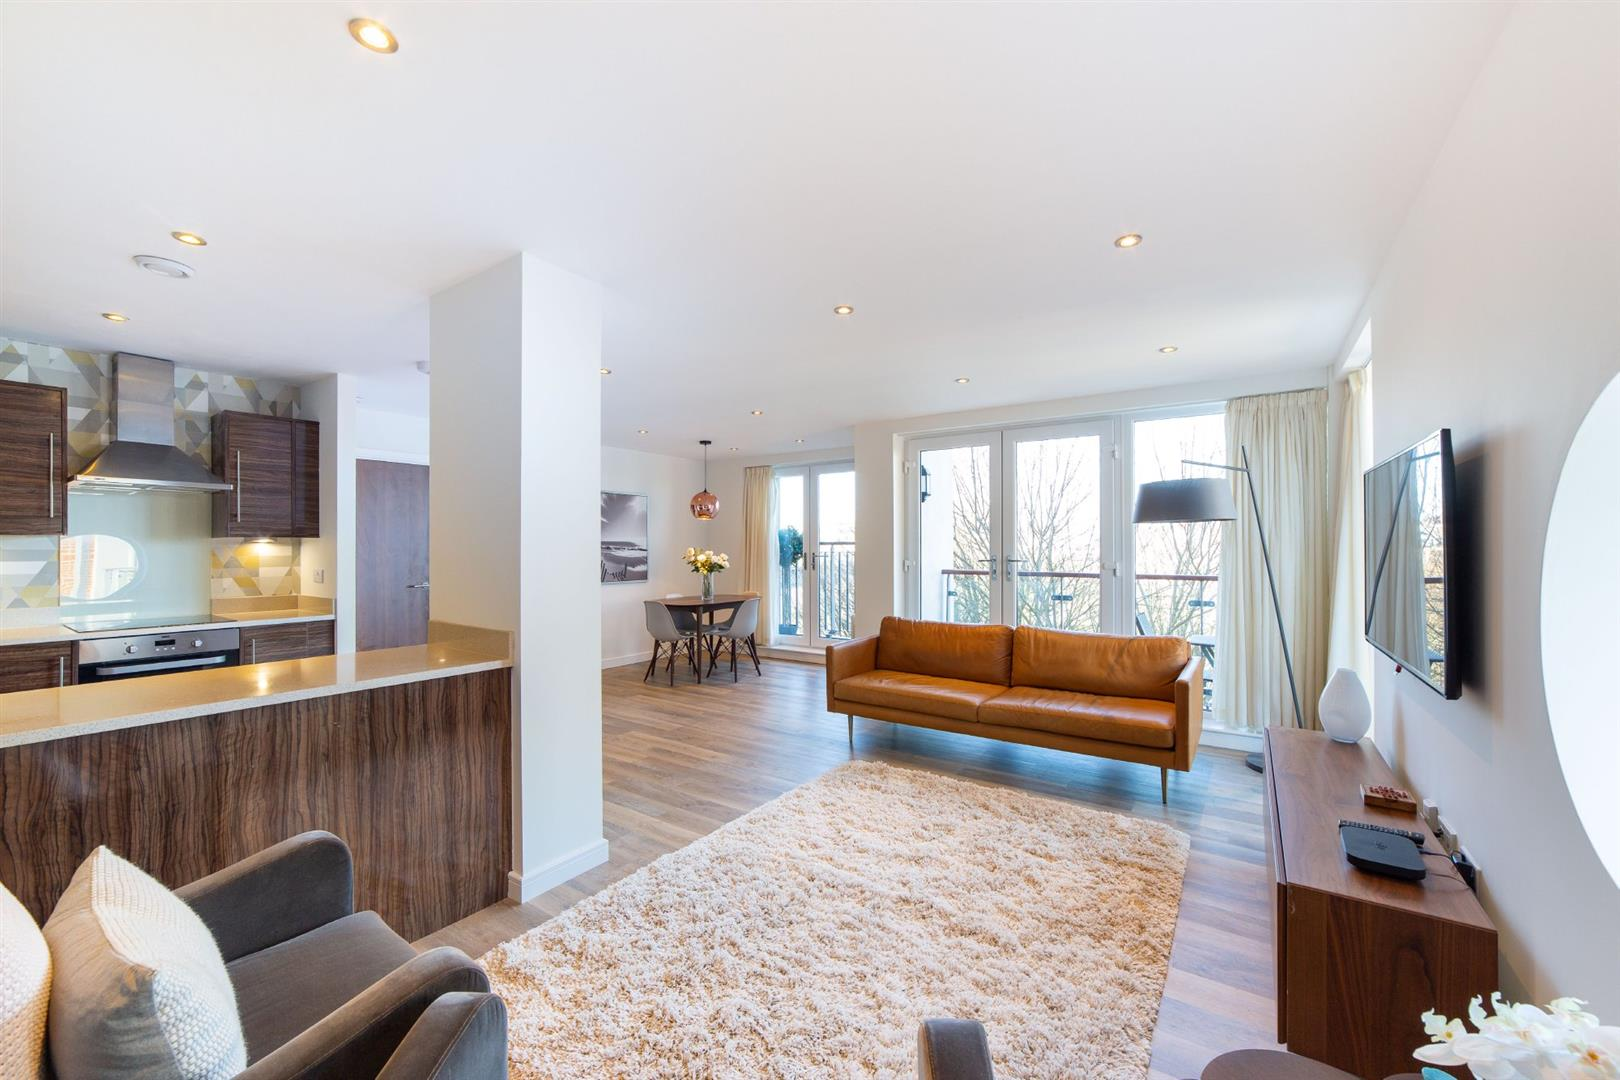 2 bed apartment for sale in Gateshead, NE8 2FB  - Property Image 1